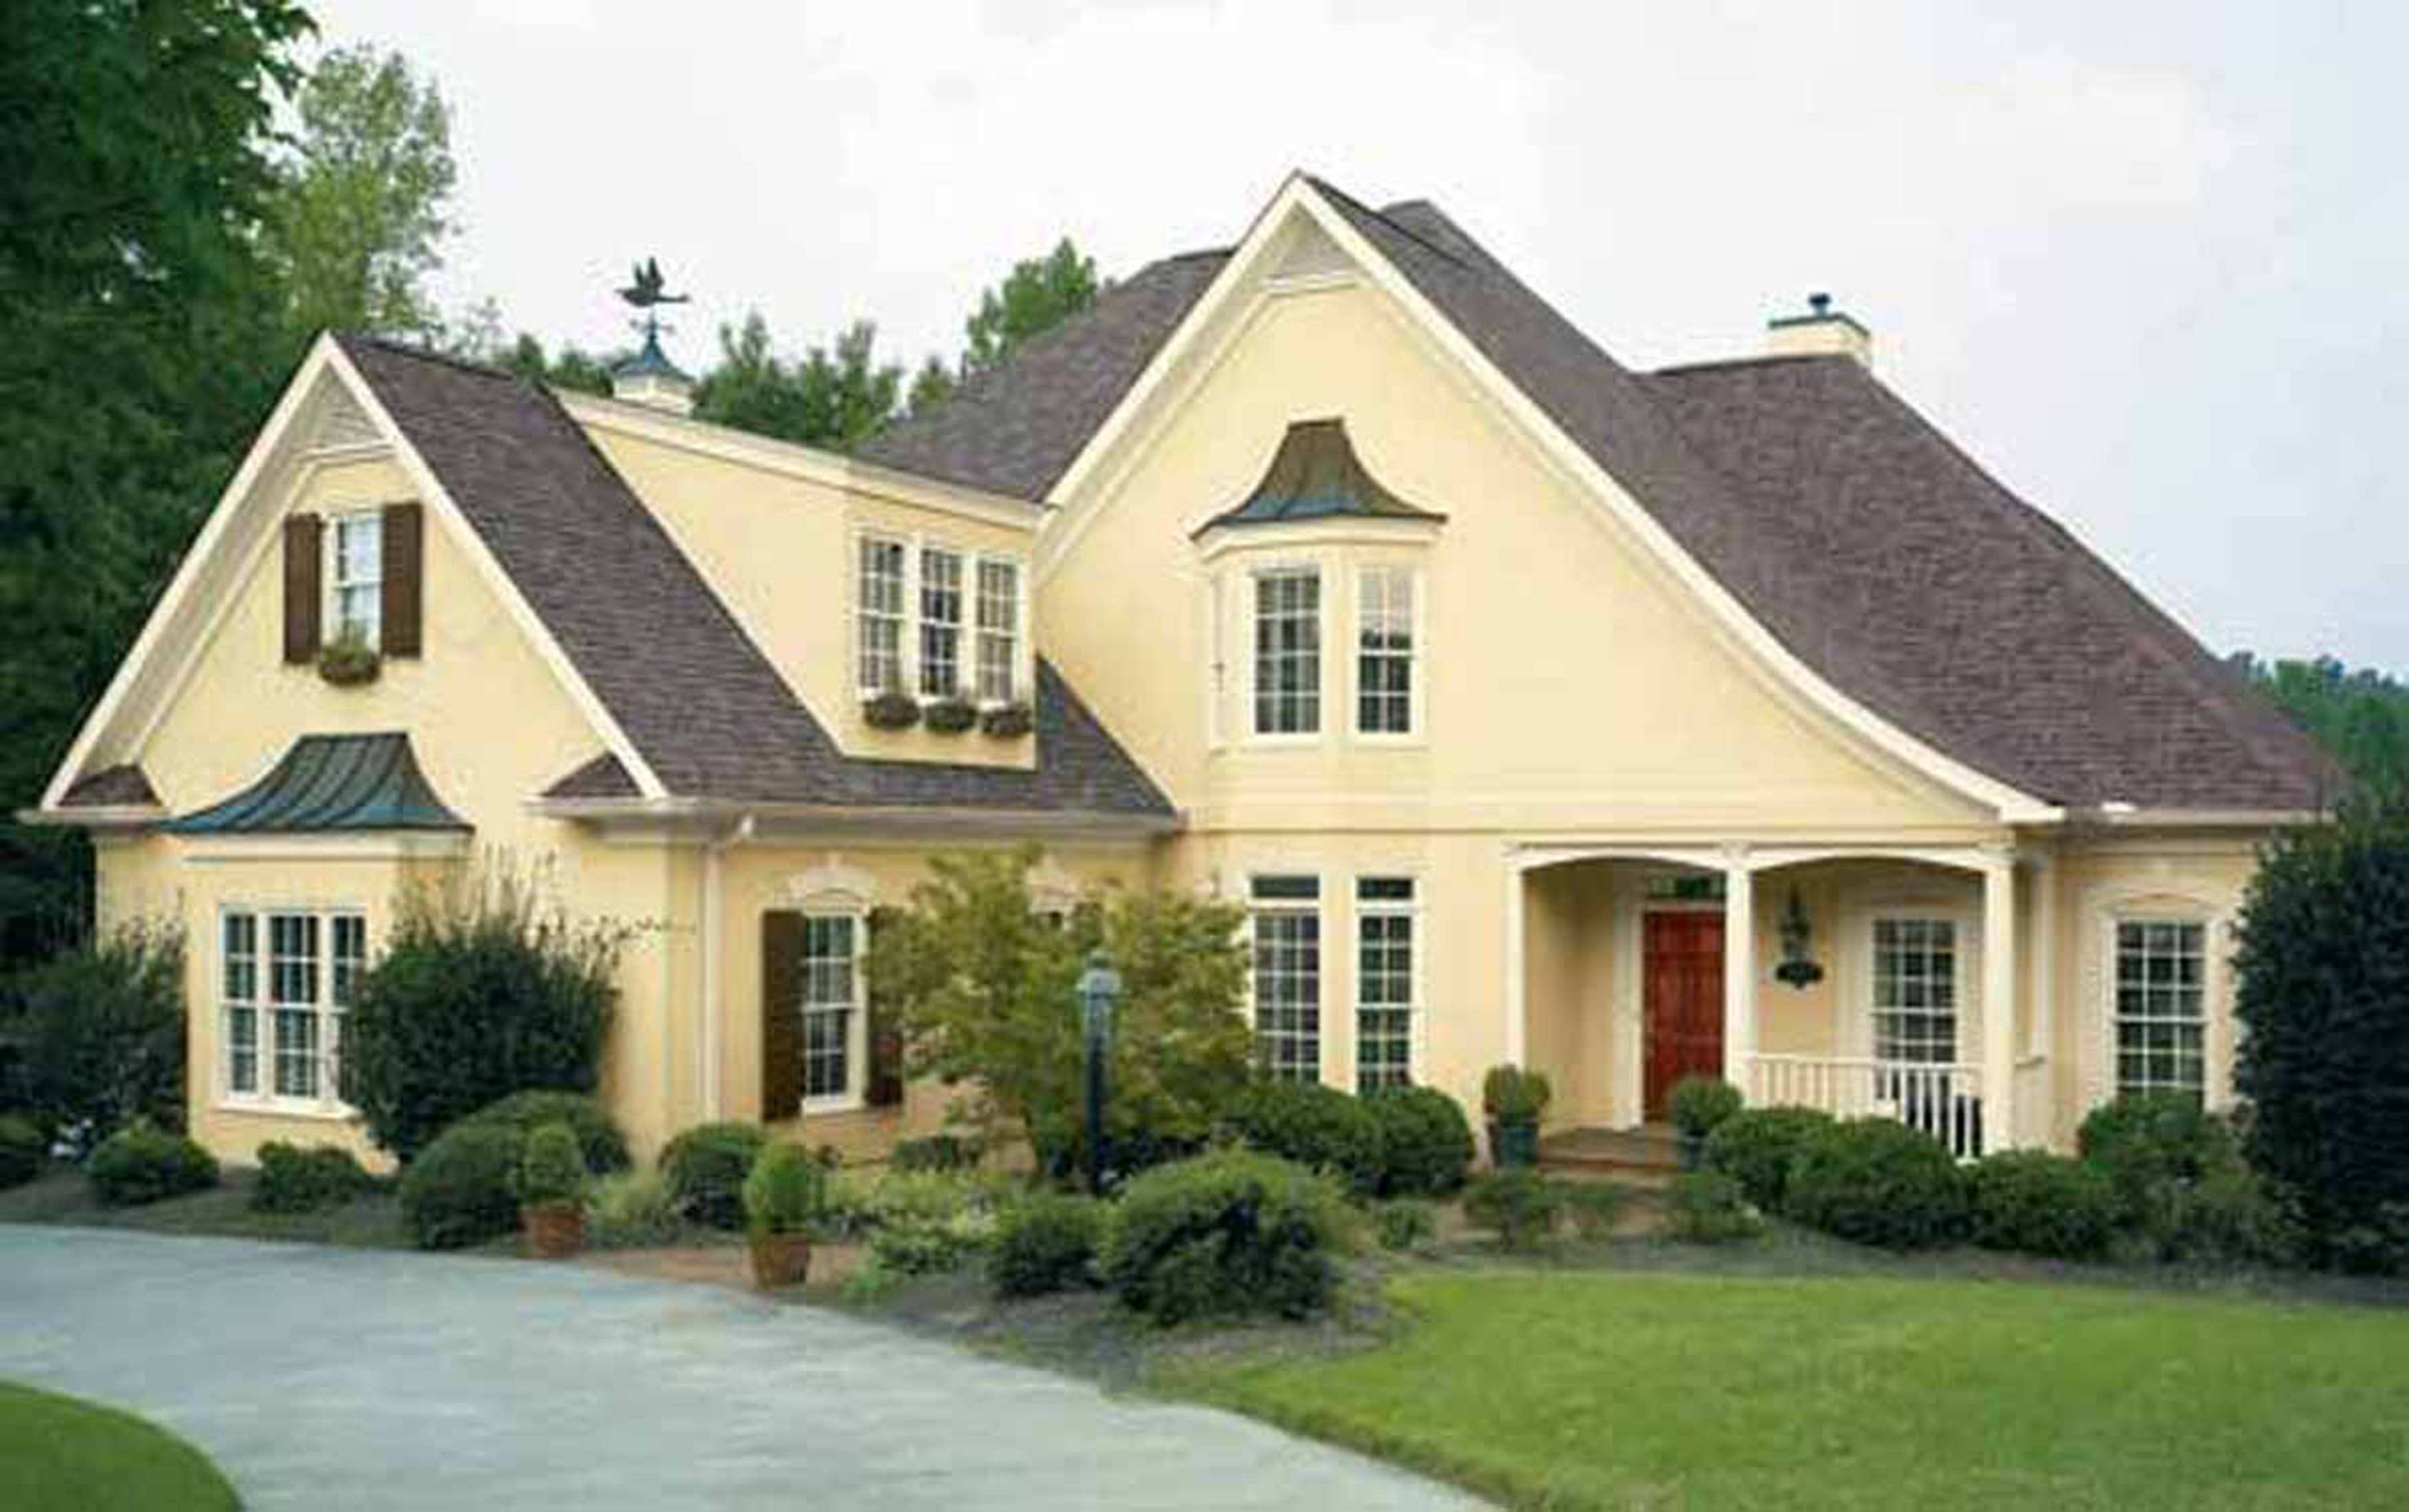 Elegant Exterior House Paint Colors 2015 - Ideas House Generation on interior colors 2015, exterior home 2015, front door colors 2015, decorating colors 2015, garage door colors 2015, carpet colors 2015, bedrooms colors 2015, bathroom colors 2015, granite colors 2015, kitchen colors 2015, wood colors 2015,